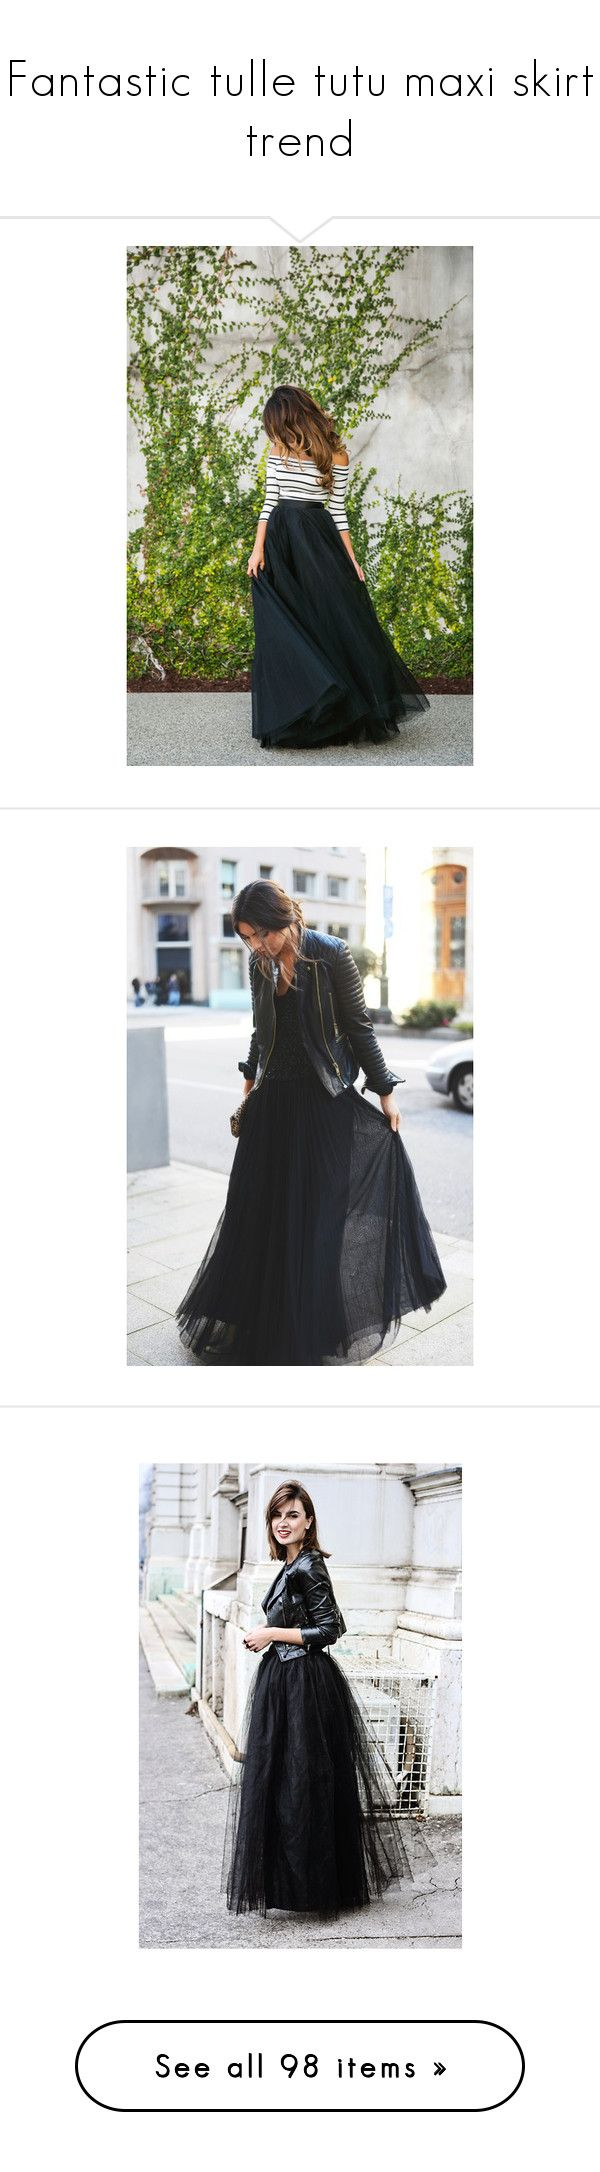 """""""Fantastic tulle tutu maxi skirt trend"""" by noseforfreedom ❤ liked on Polyvore featuring TrickyTrend, tulletutumaxiskirt, skirts, long ankle length skirts, long tulle skirt, puffy tulle skirt, long tulle maxi skirt, layered tulle skirt, dresses and black                                                                                                                                                      More"""